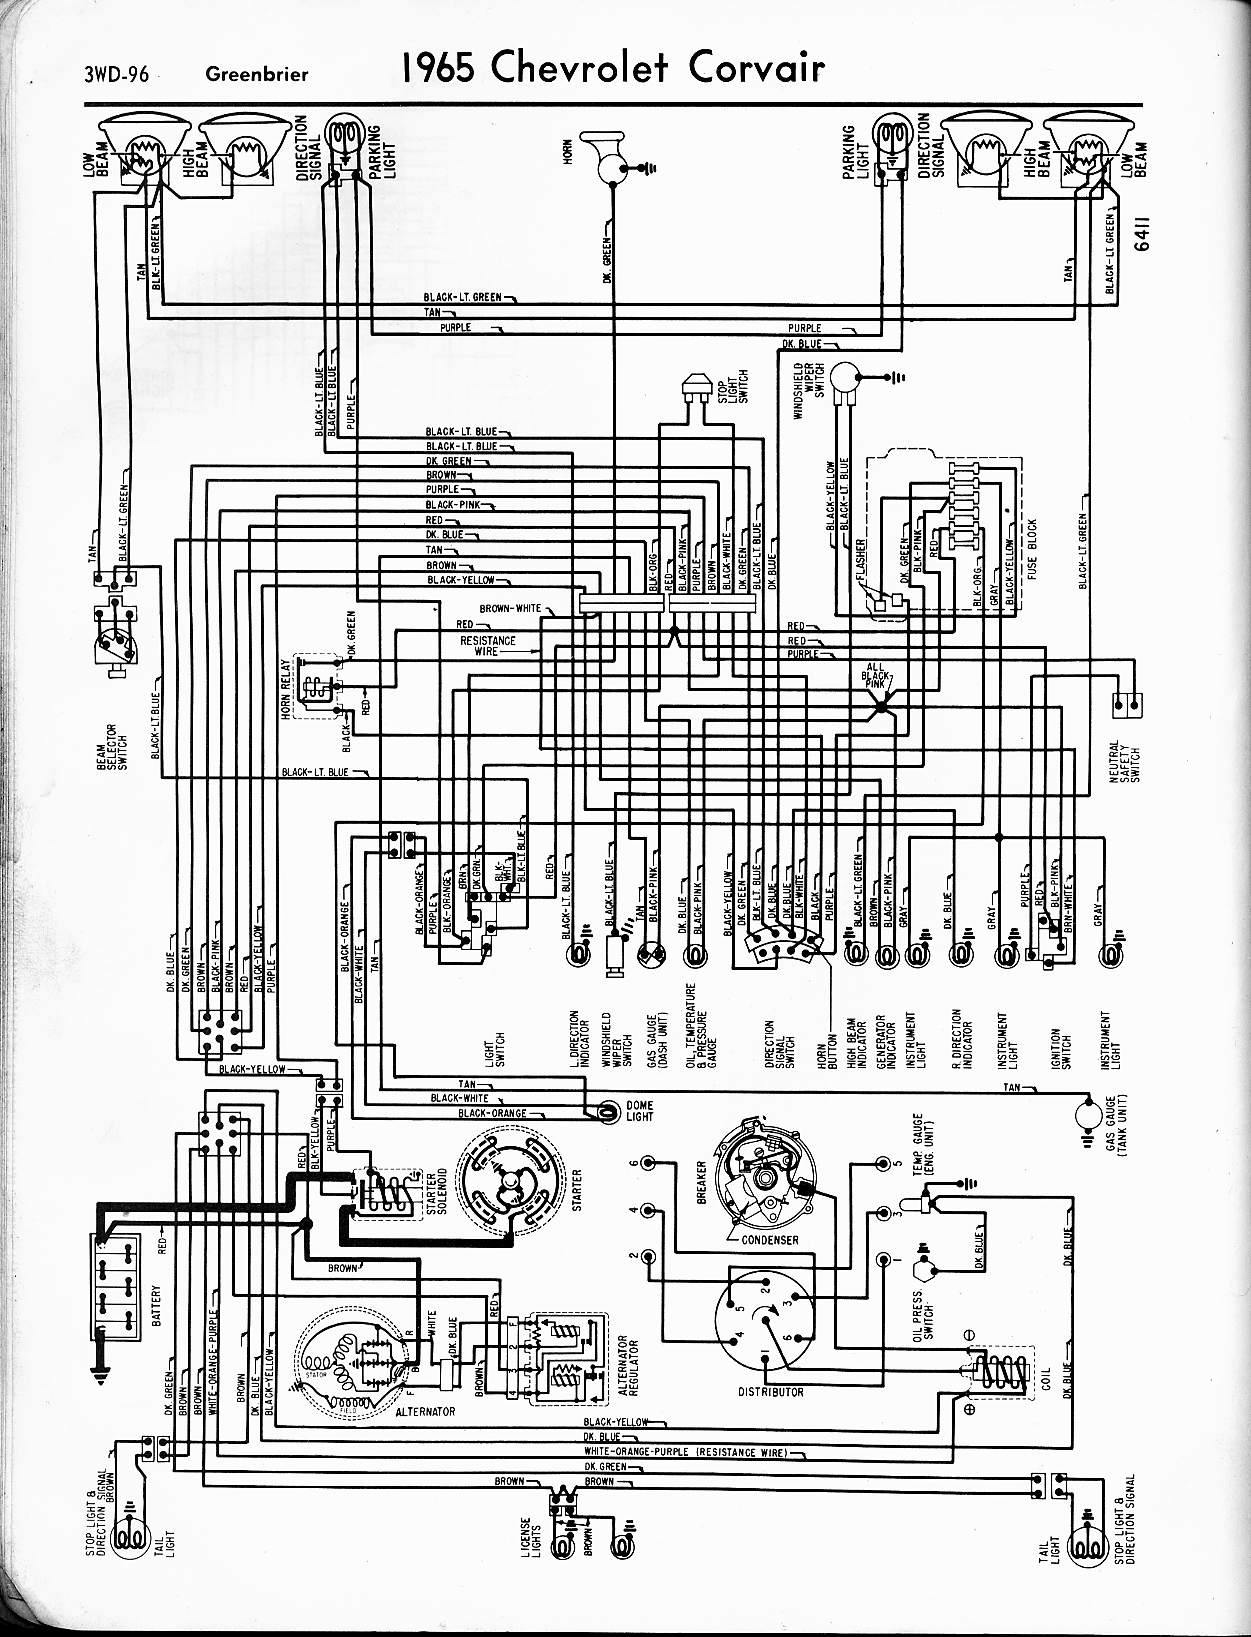 1965 corvair wiring diagram schematic 1963 corvair wiring diagram 57 - 65 chevy wiring diagrams